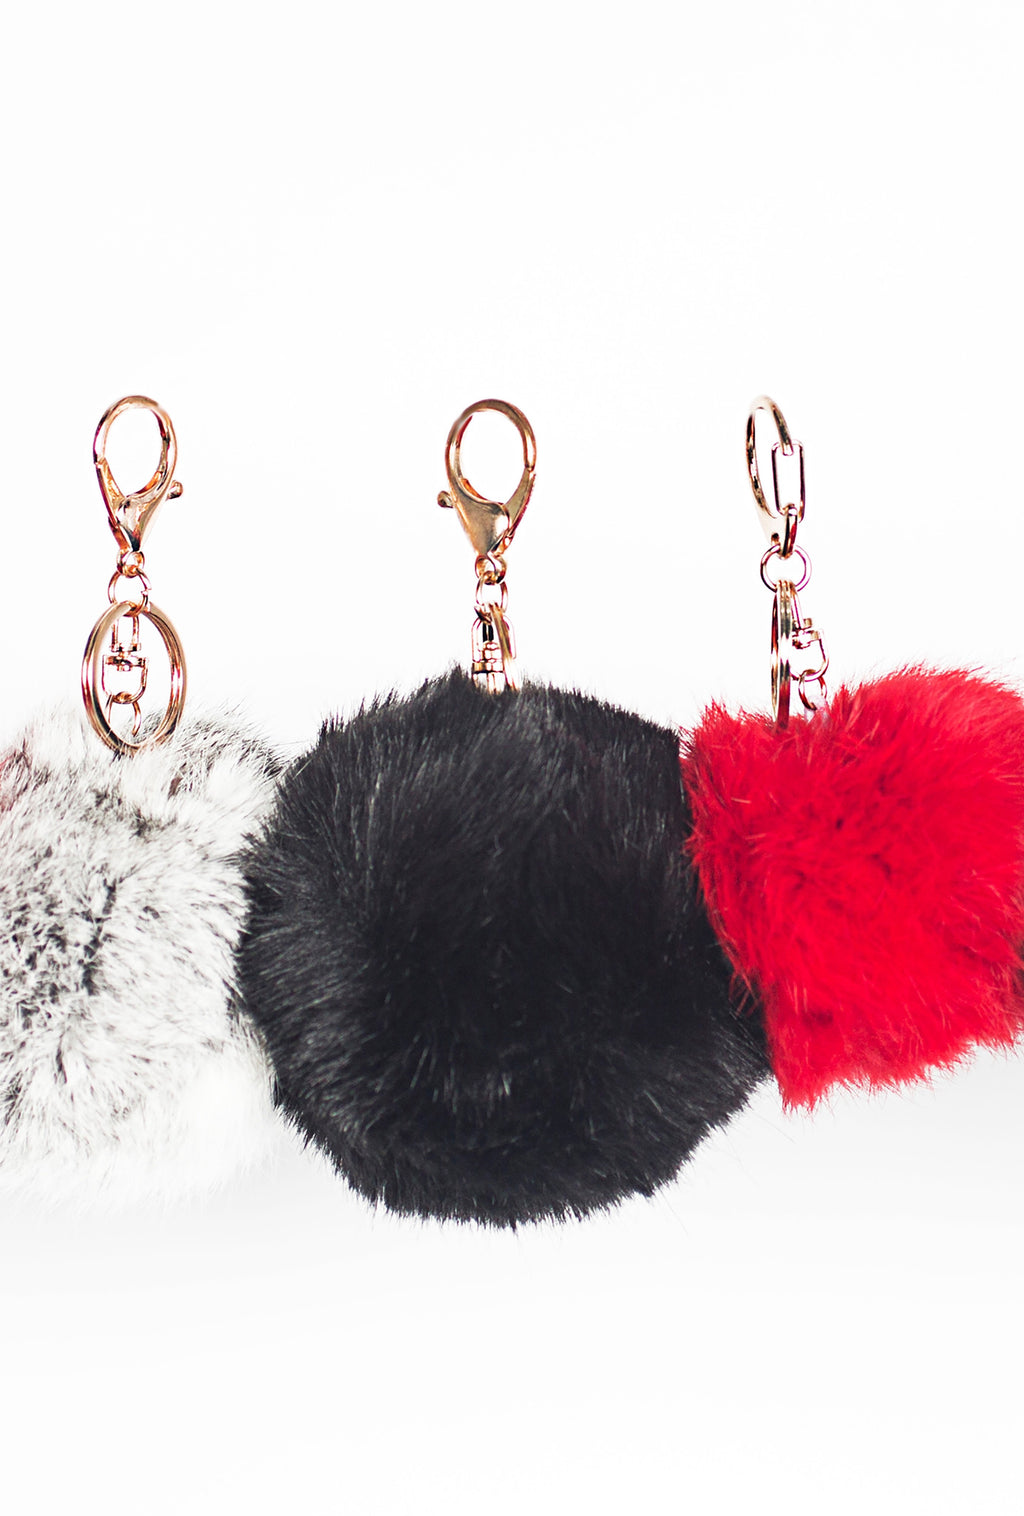 Fur Key Chains/Purse Charms